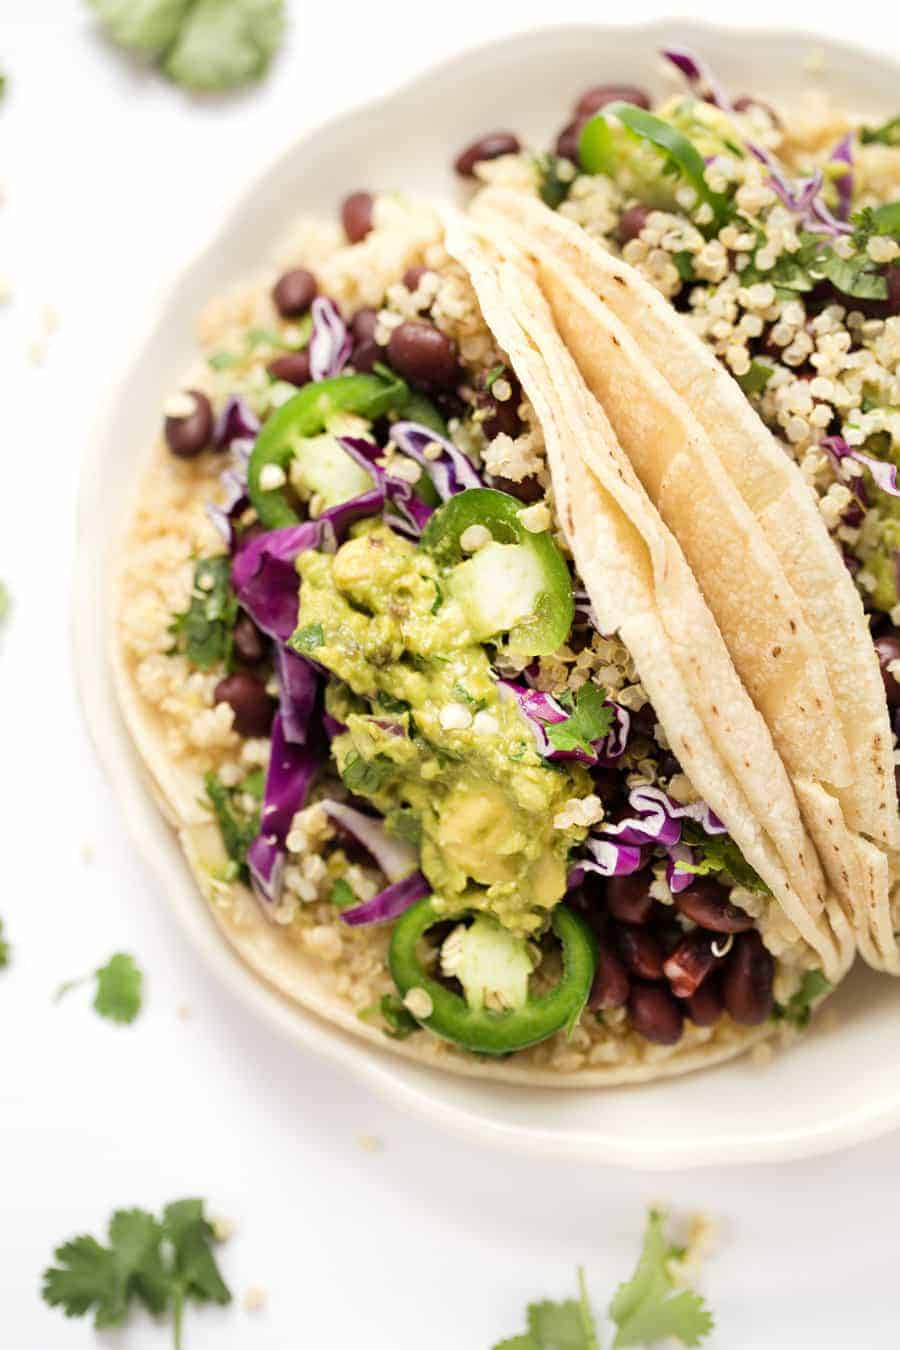 These healthy Cilantro Lime Black Bean Quinoa Tacos are the PERFECT recipe for summer! Light, flavorful, healthy and super SIMPLE! [vegan]